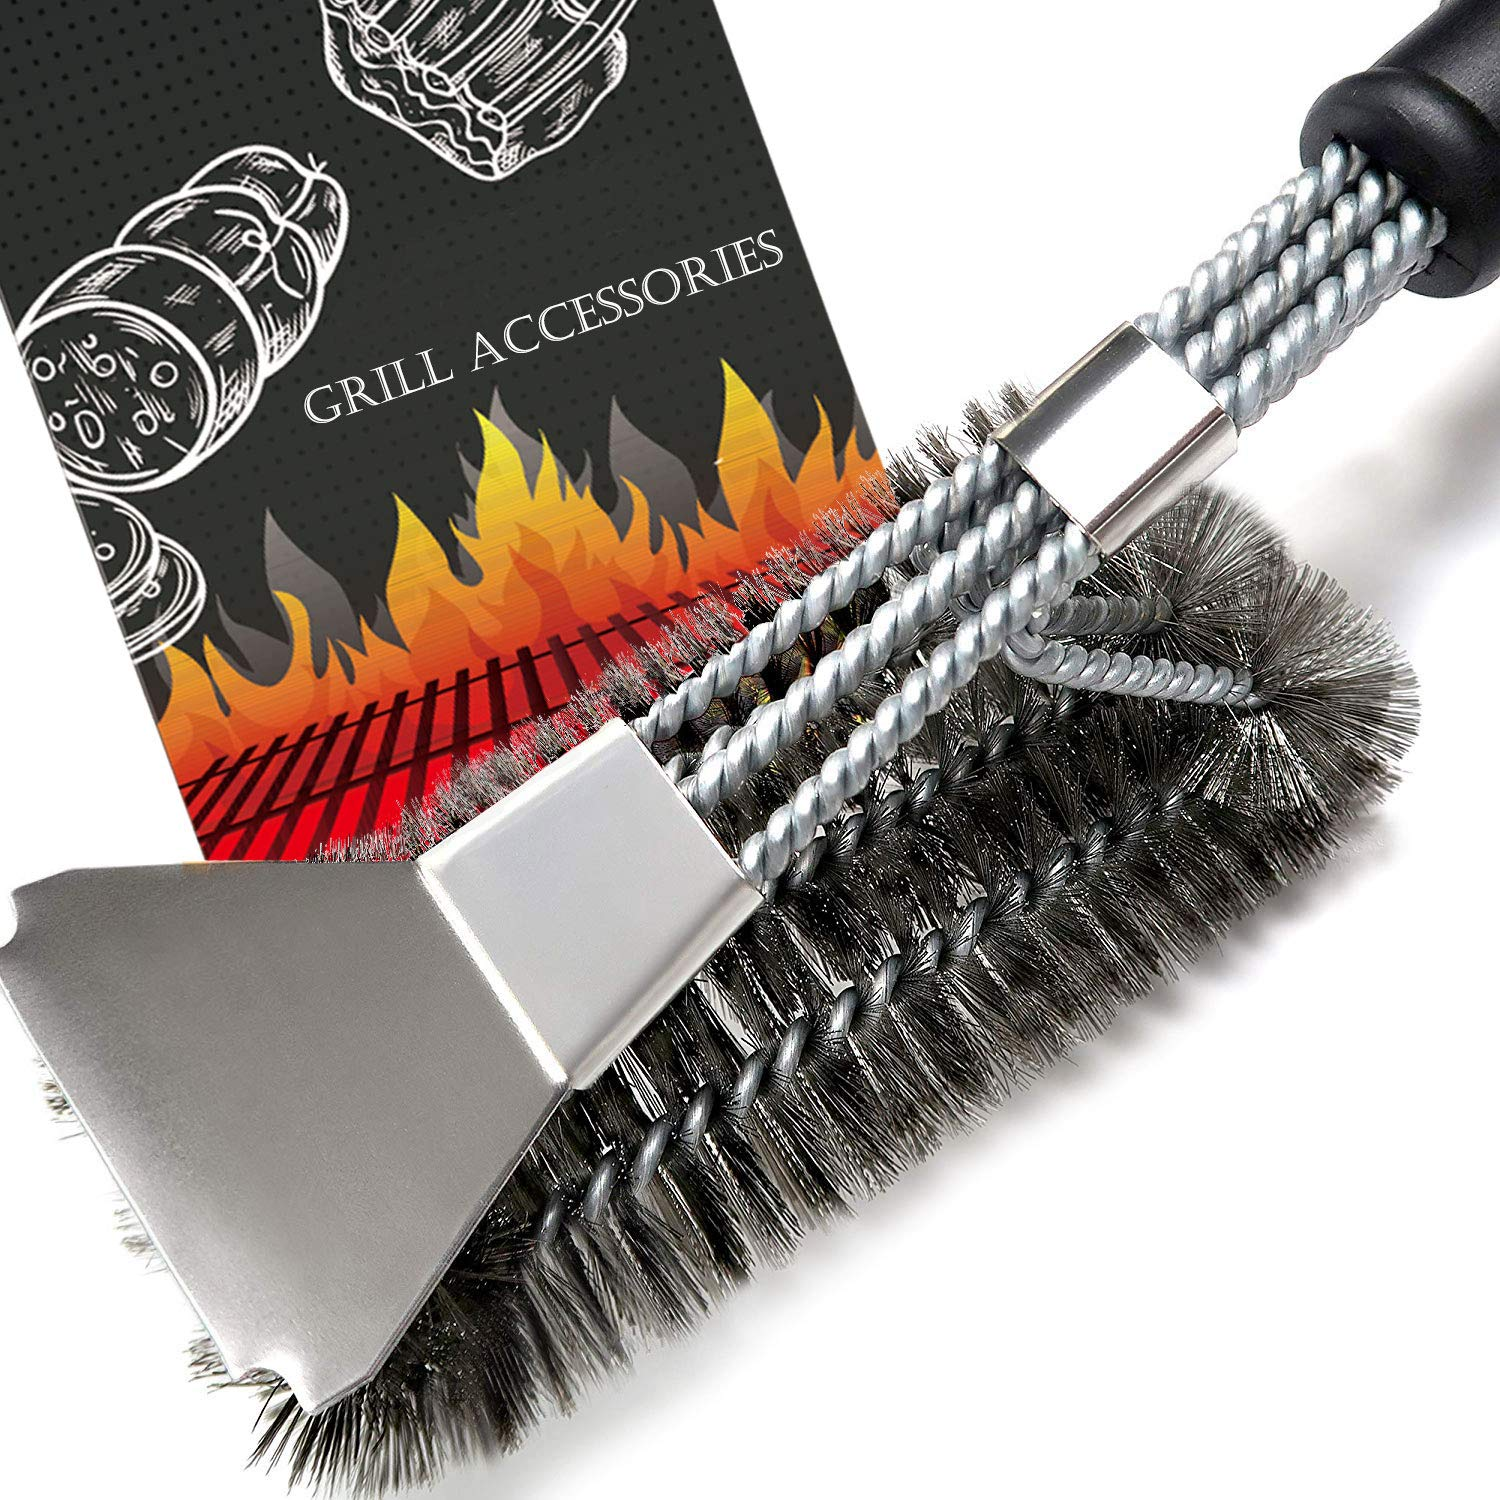 HOMEKOKO Spring Sale Heavy Duty Grill Brush with Scraper BBQ Brush for Grill Safe 18 Stainless Steel Woven Wire 3-in-1 Bristles Grill Cleaning Brush for Weber Gas//Charcoal Grill